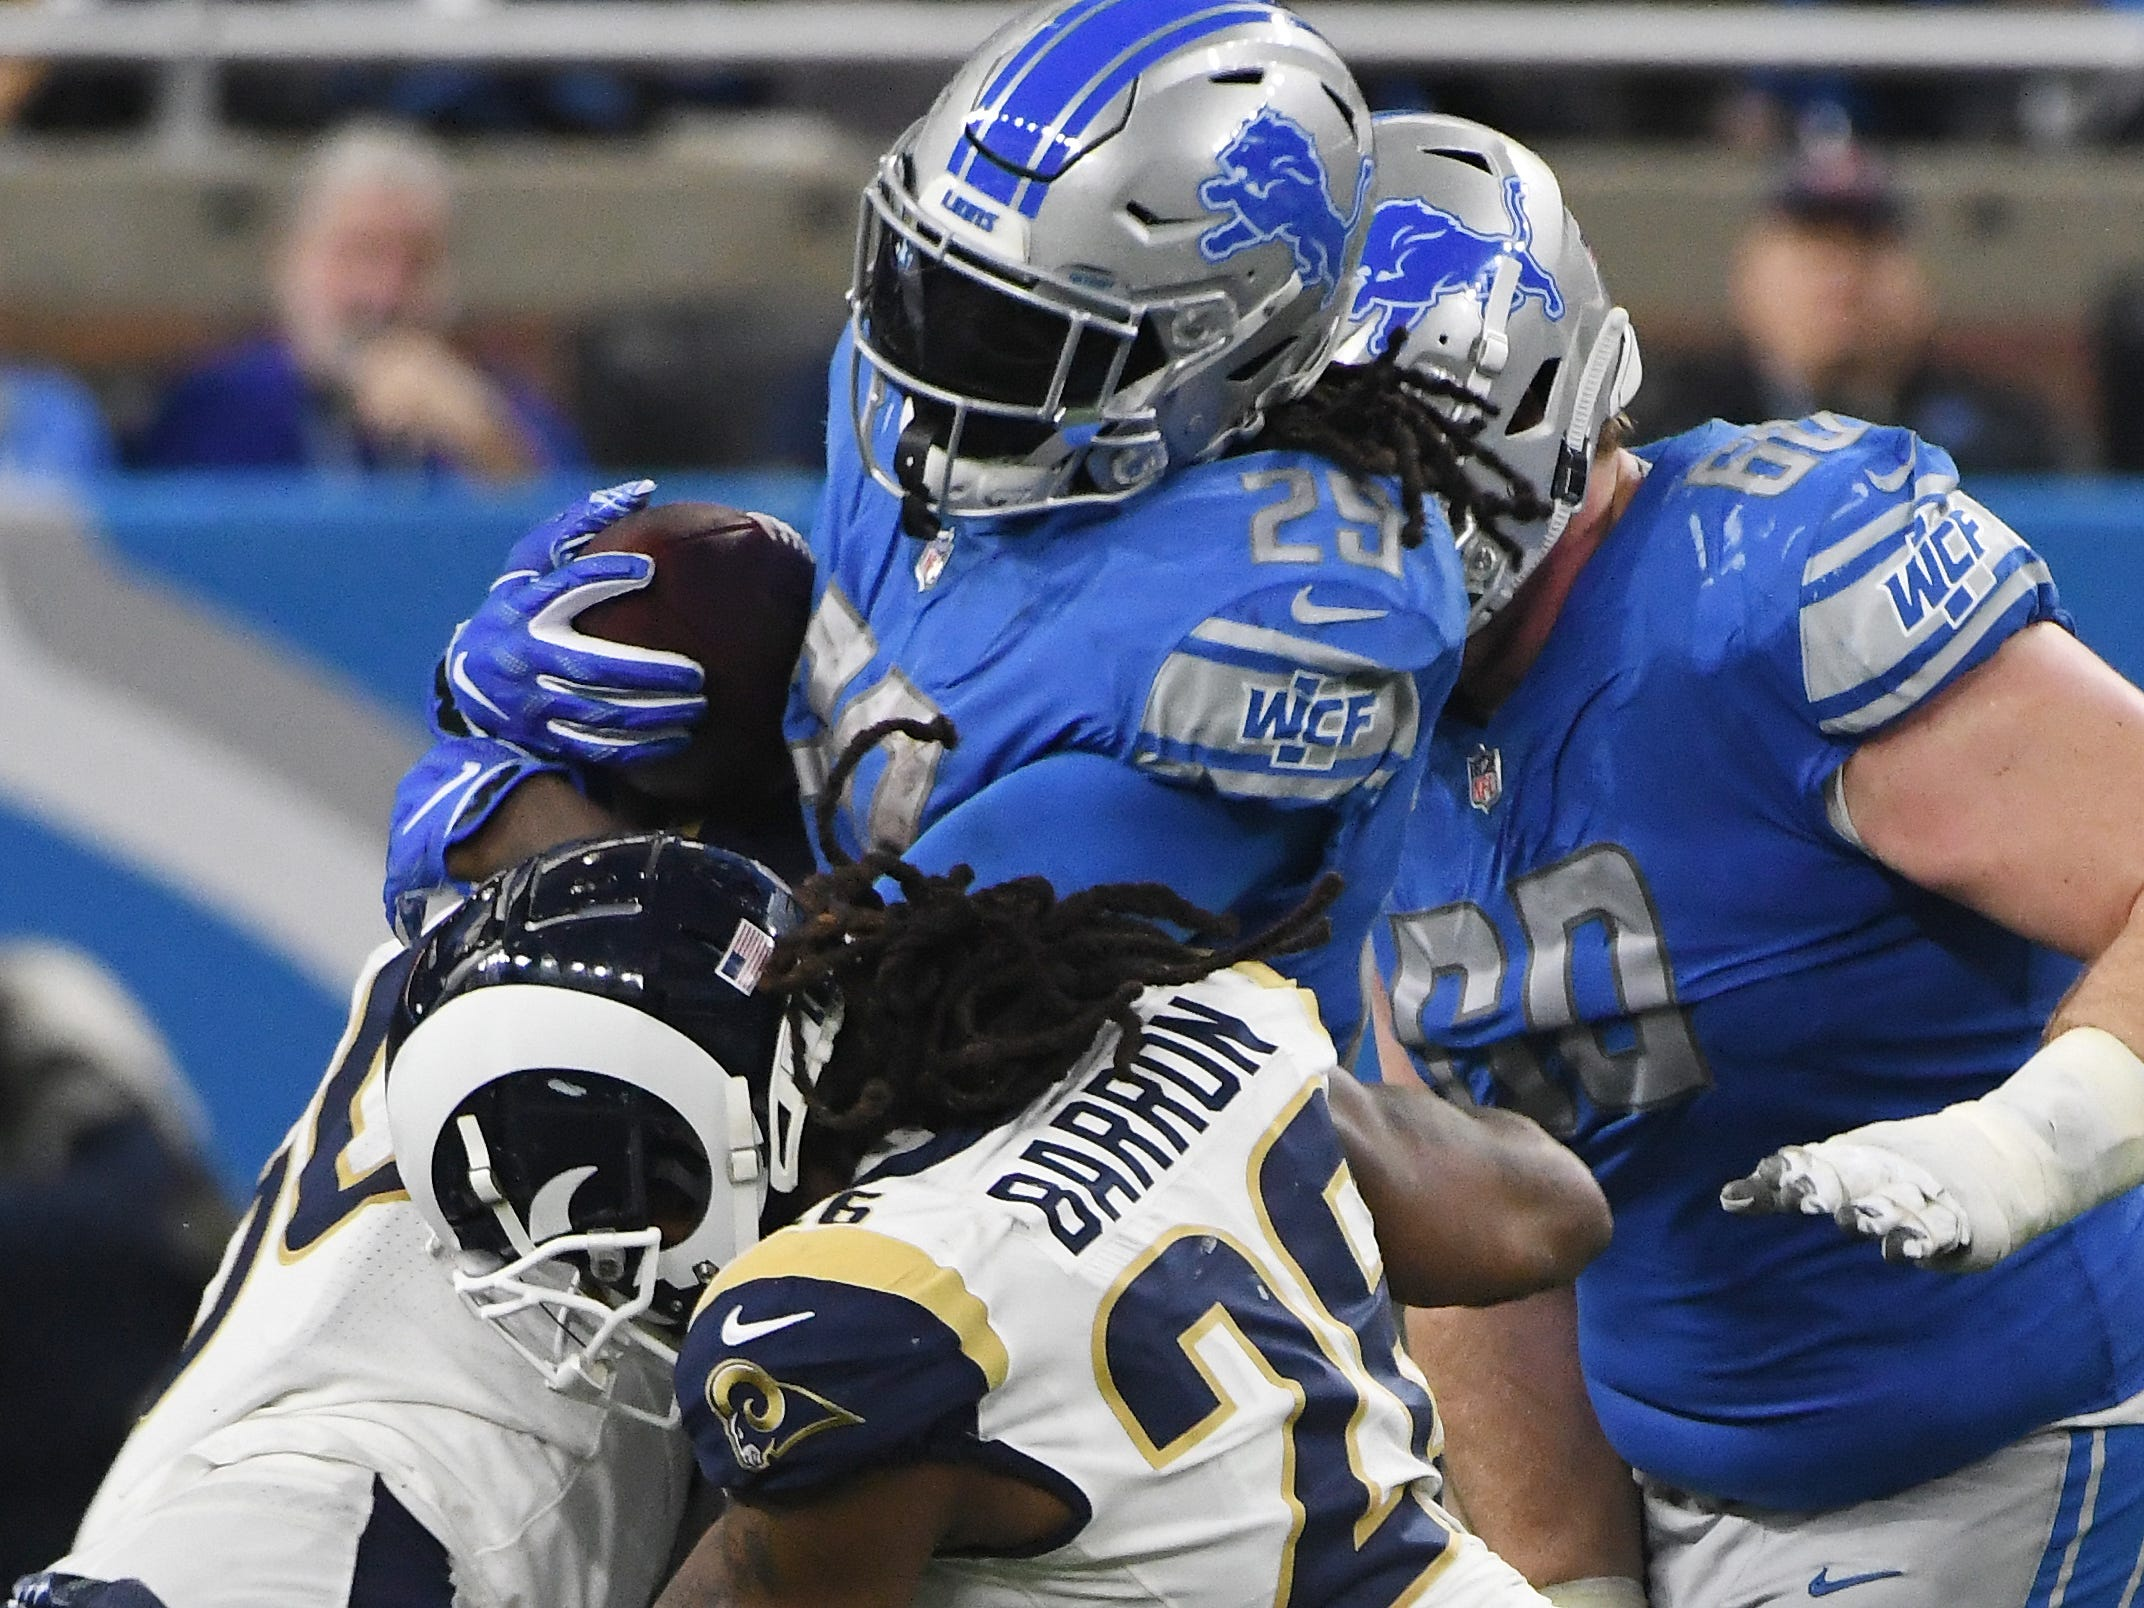 Lions running back LeGarrette Blount is stopped by the Rams defense in the third quarter.